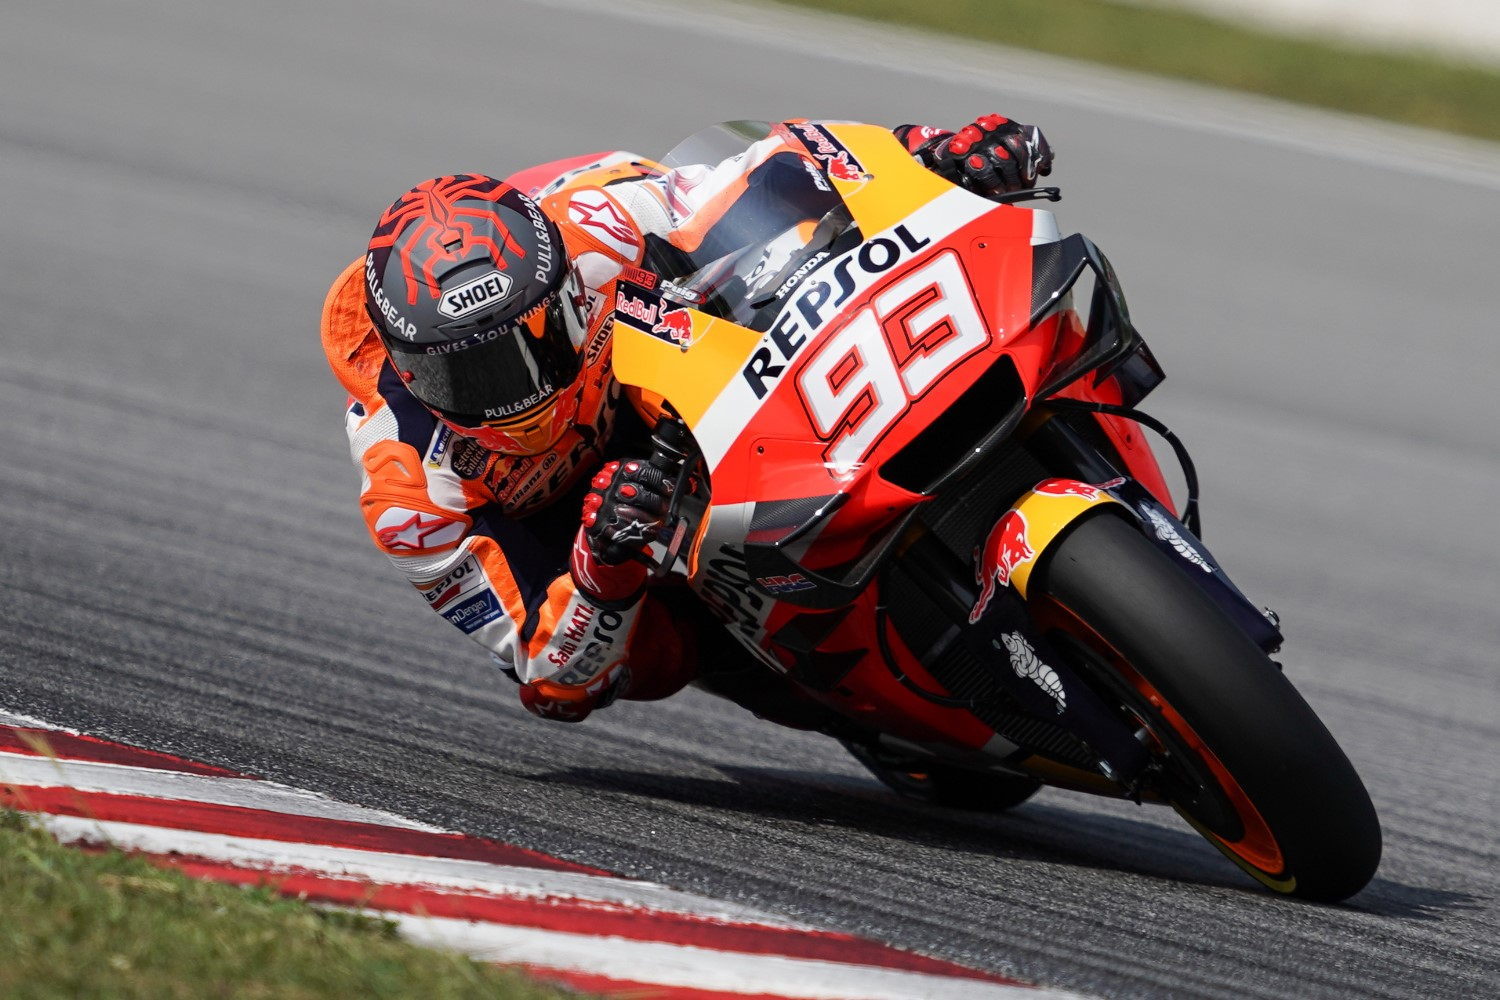 Still recovering from major surgery, Marc Marquez only ran half a day and did not try hard